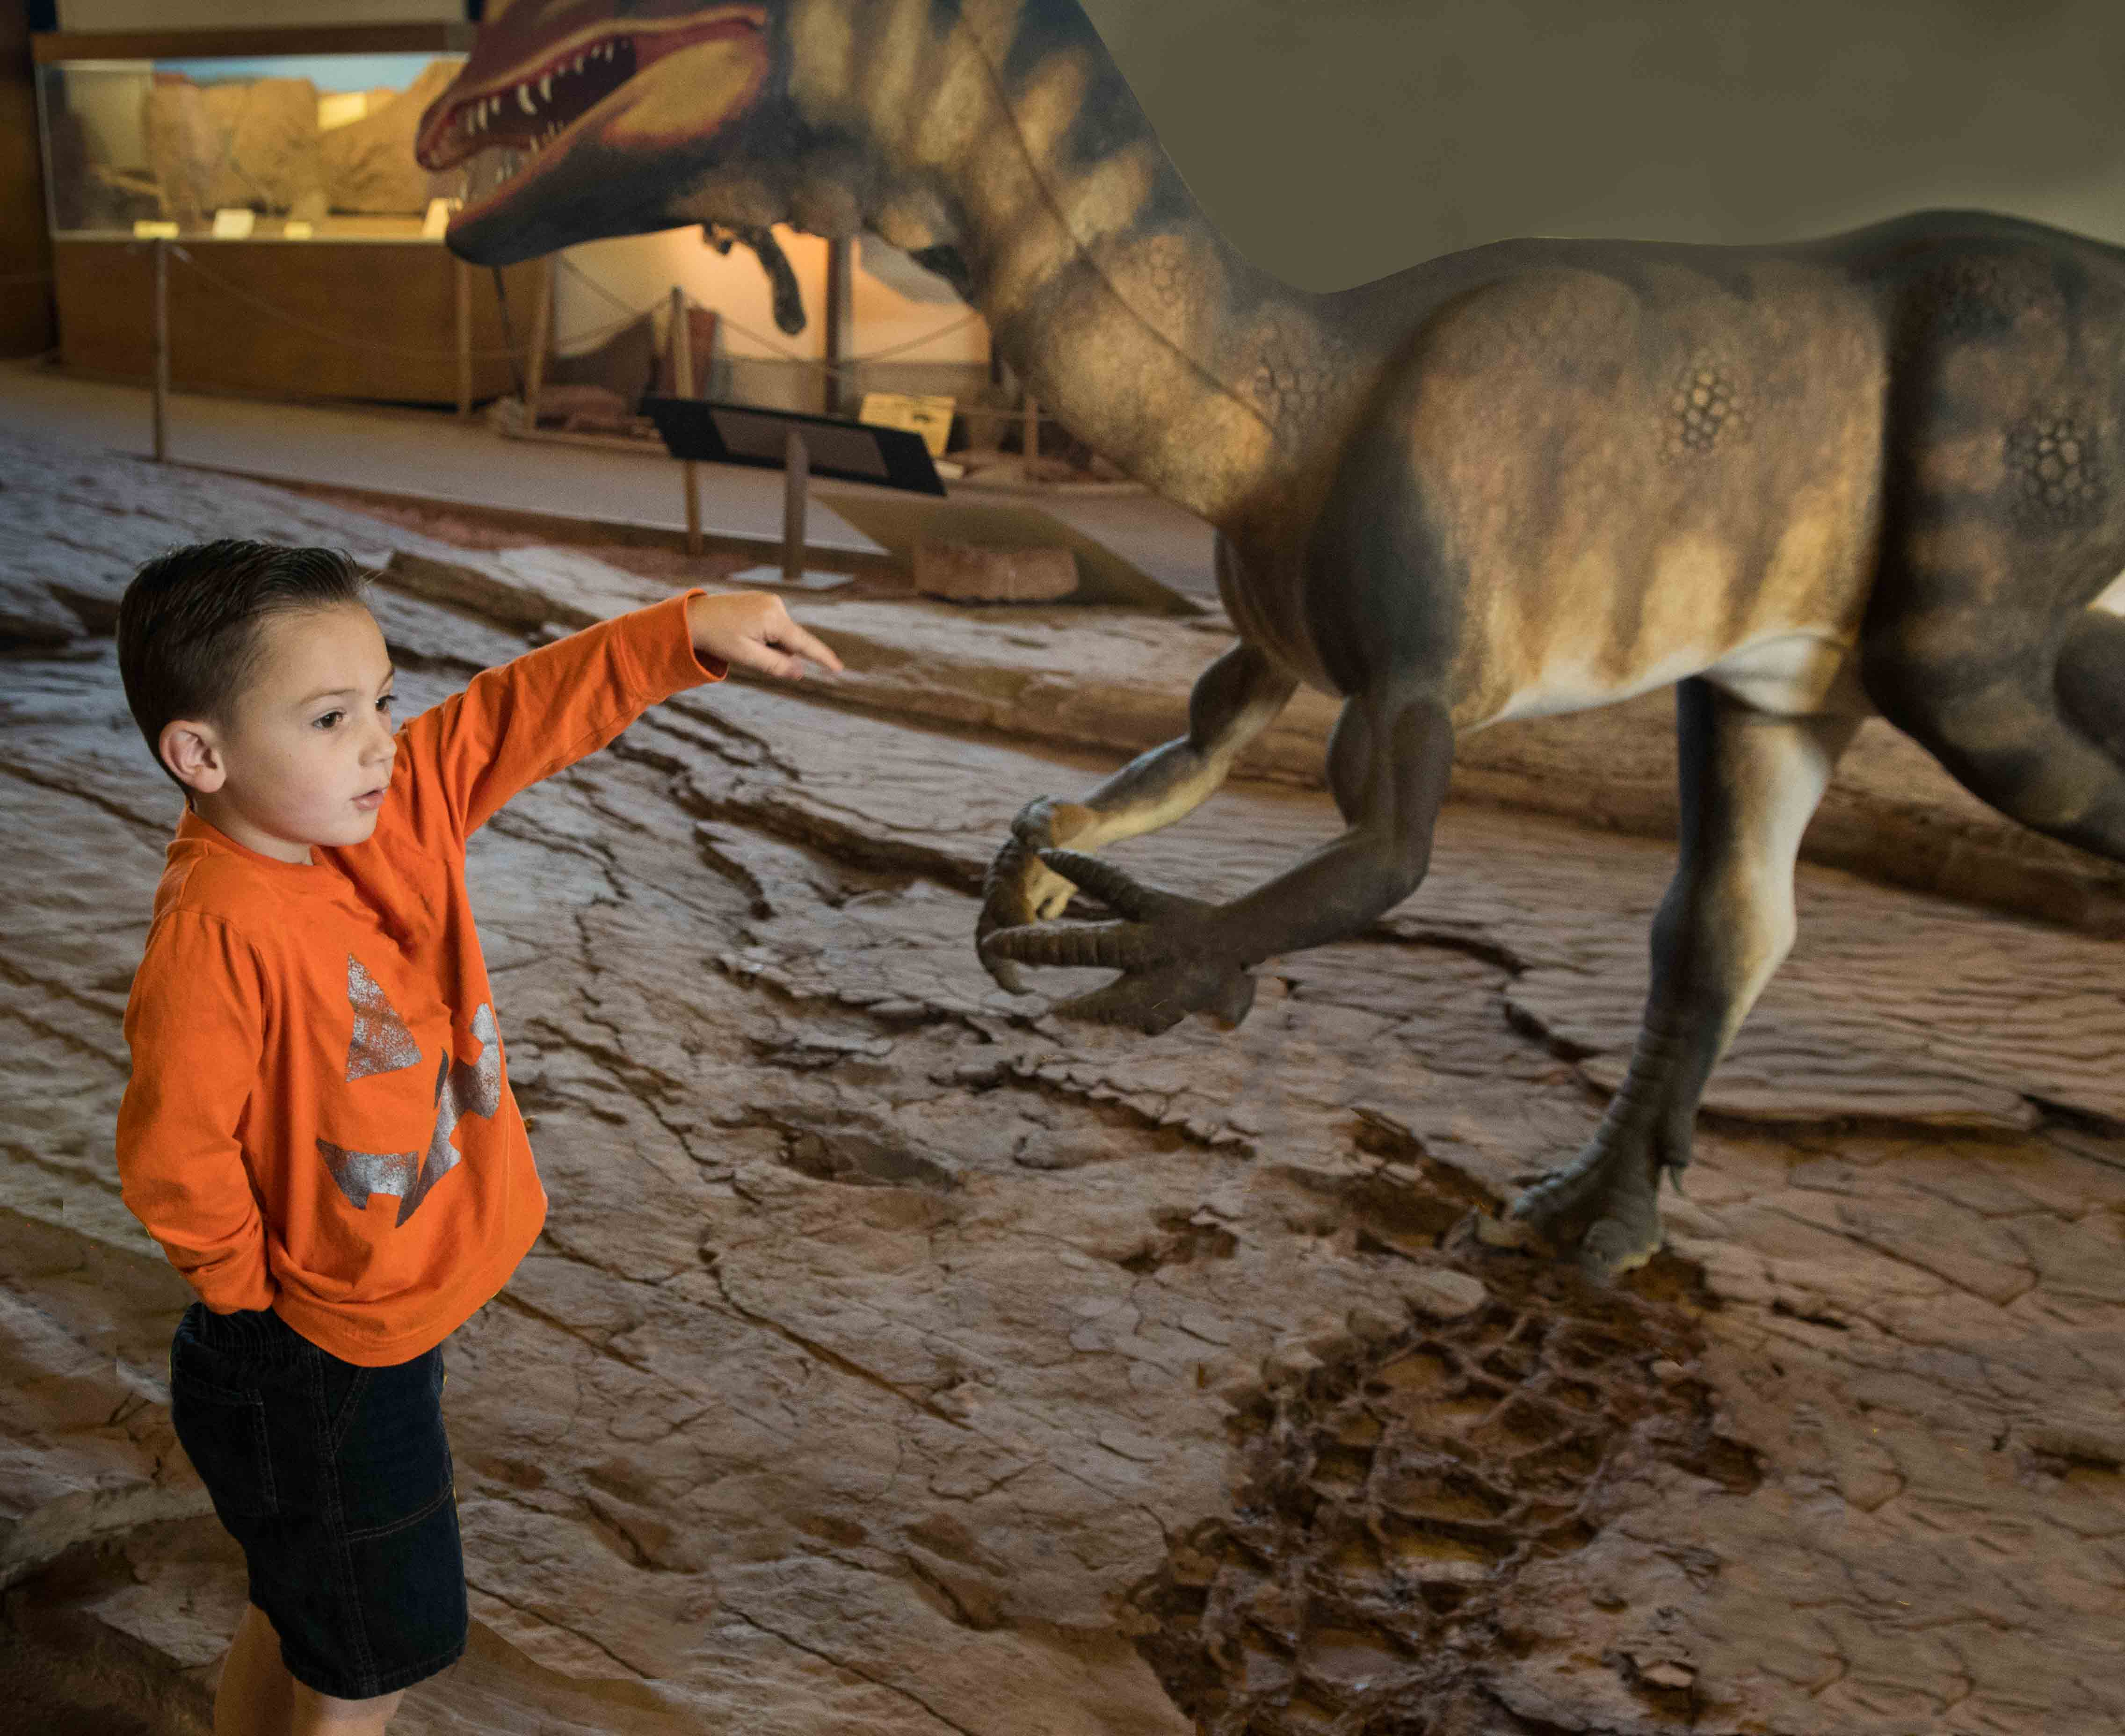 Beckett Bringhurst looks at a Dilophosaurus making footprints 200 million years ago, Dinosaur Discovery Site, St. George, Utah, Oct. 31, 2016 | Photo by Jim Lillywhite, St. George News